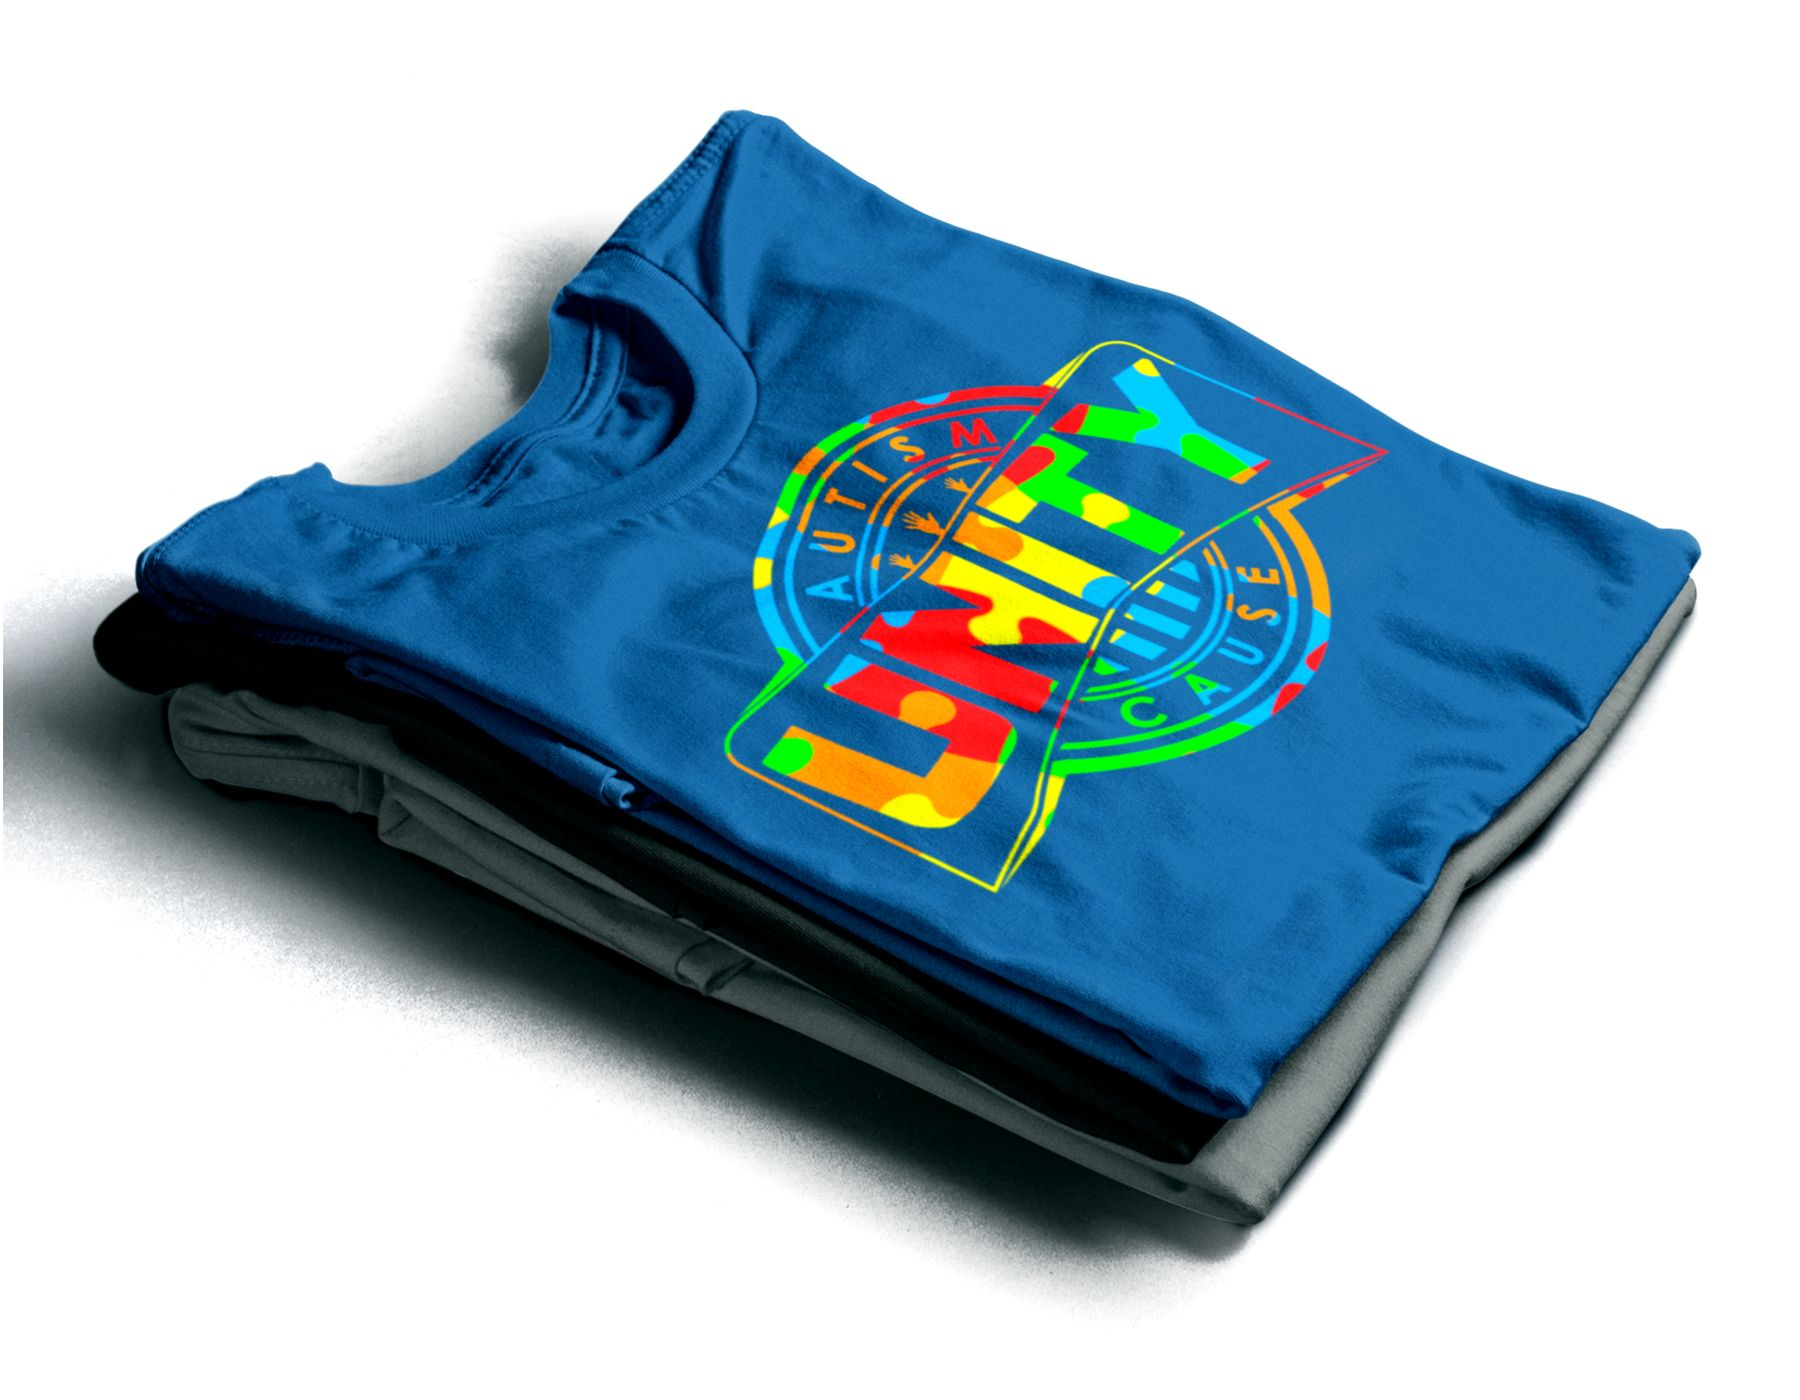 a80e65b2acd Autism awareness Men's Style clothing Made For You, Designed For Autism  Awareness charity. Unity